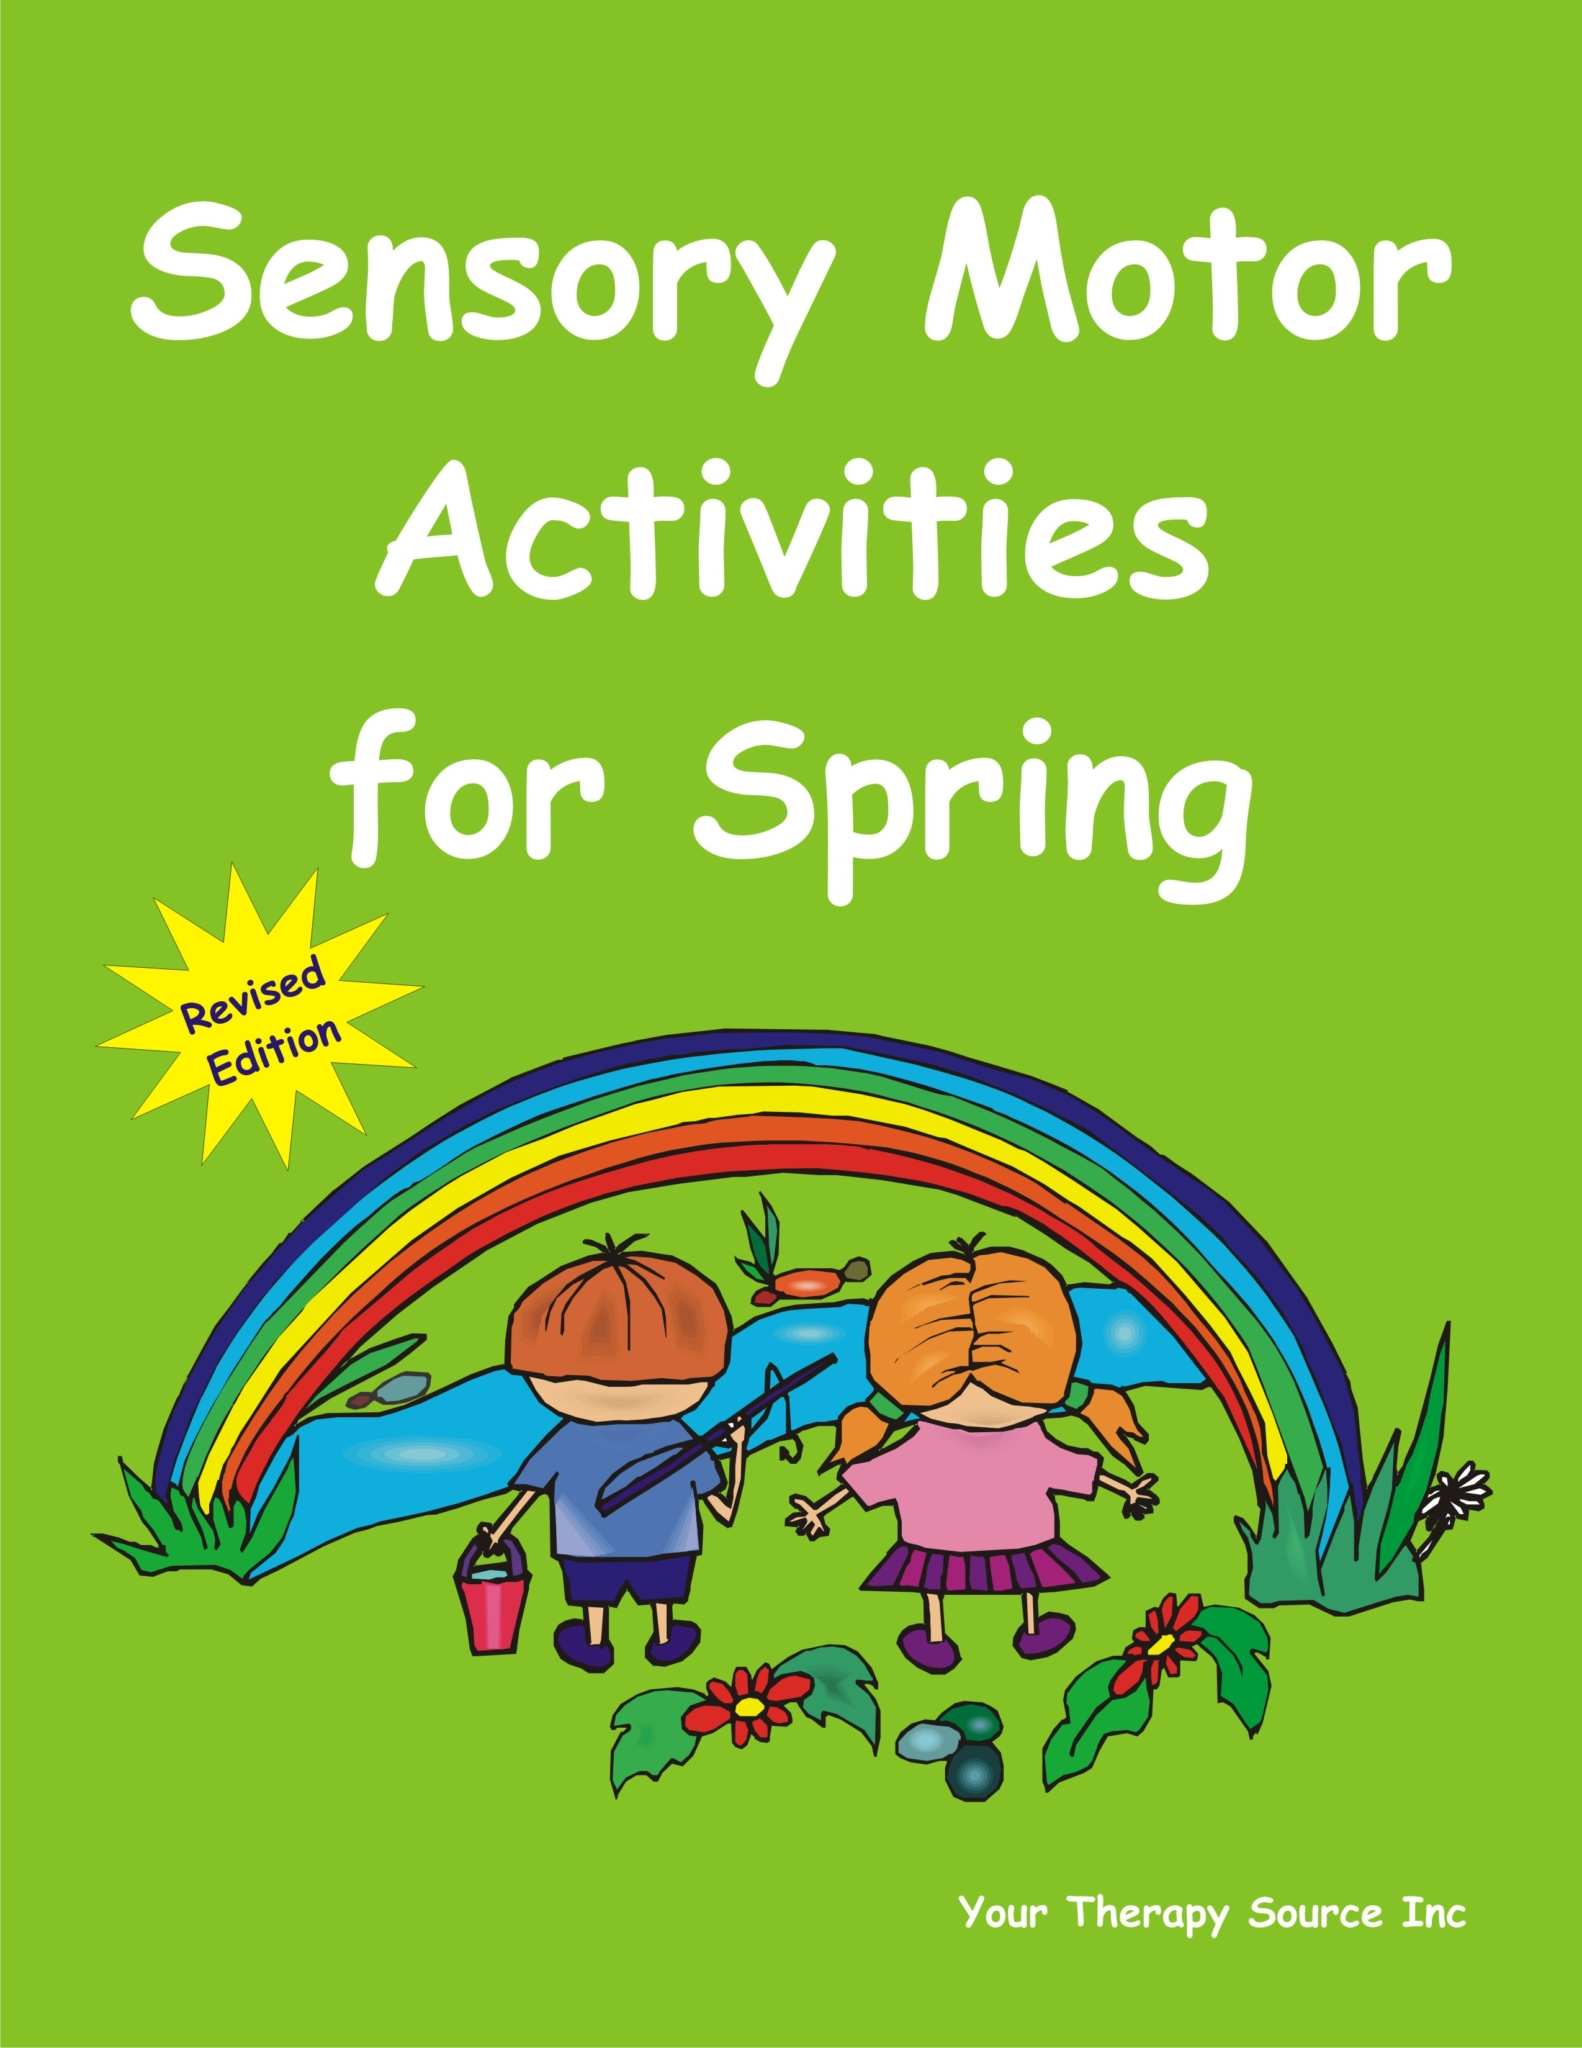 Sensory Motor Activities for Spring